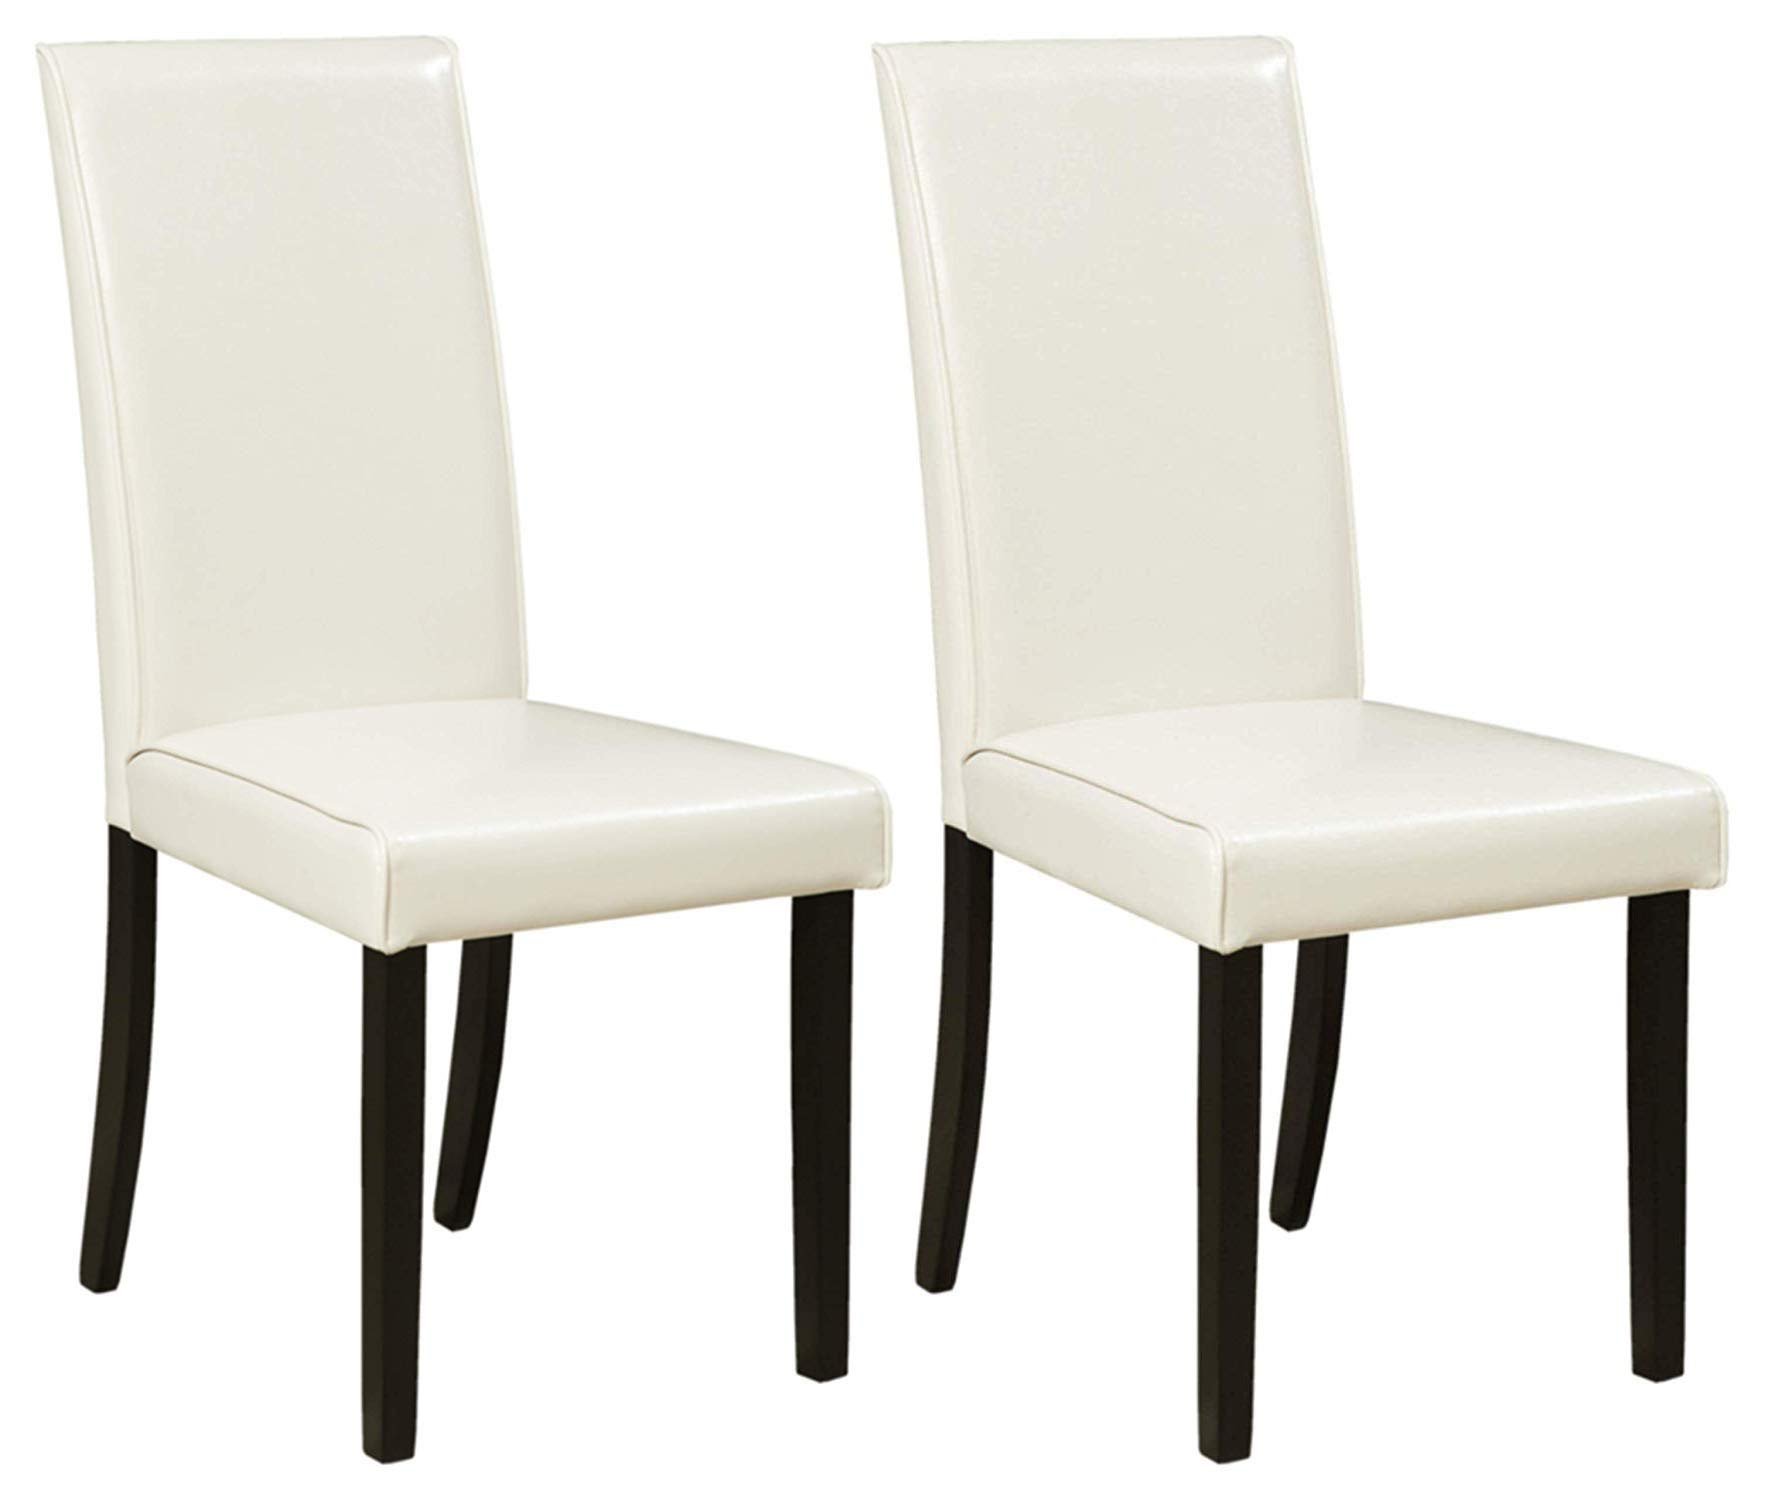 Ashley Furniture Signature Design - Kimonte Dining Room Chair - High Back - Contemporary - Set of 2 - Ivory by Signature Design by Ashley